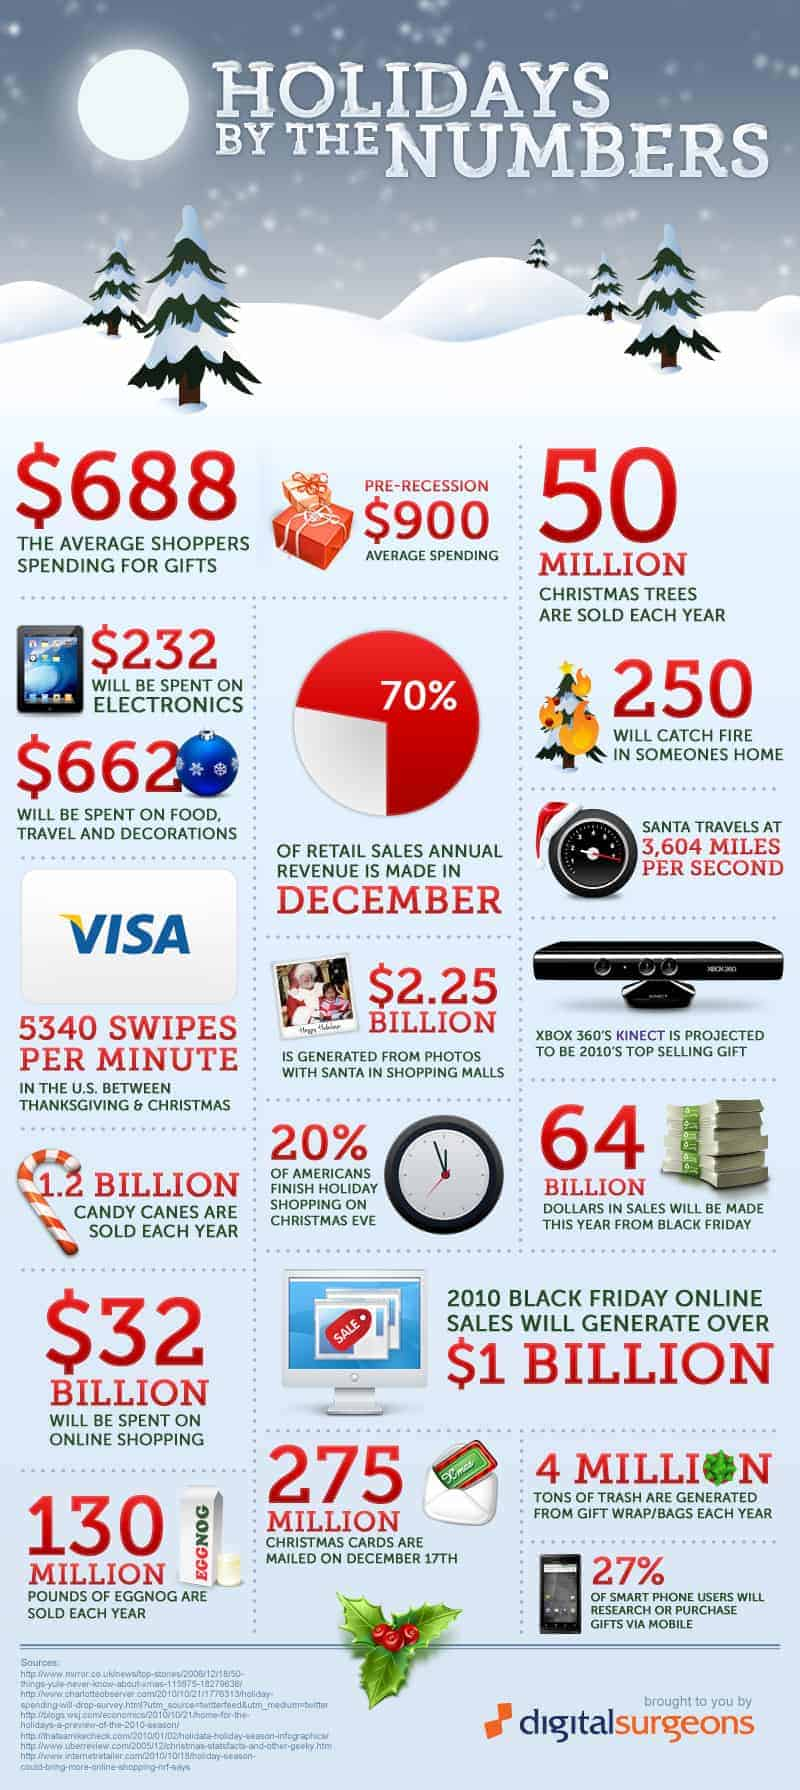 Daily Infographic: Holidays By The Numbers